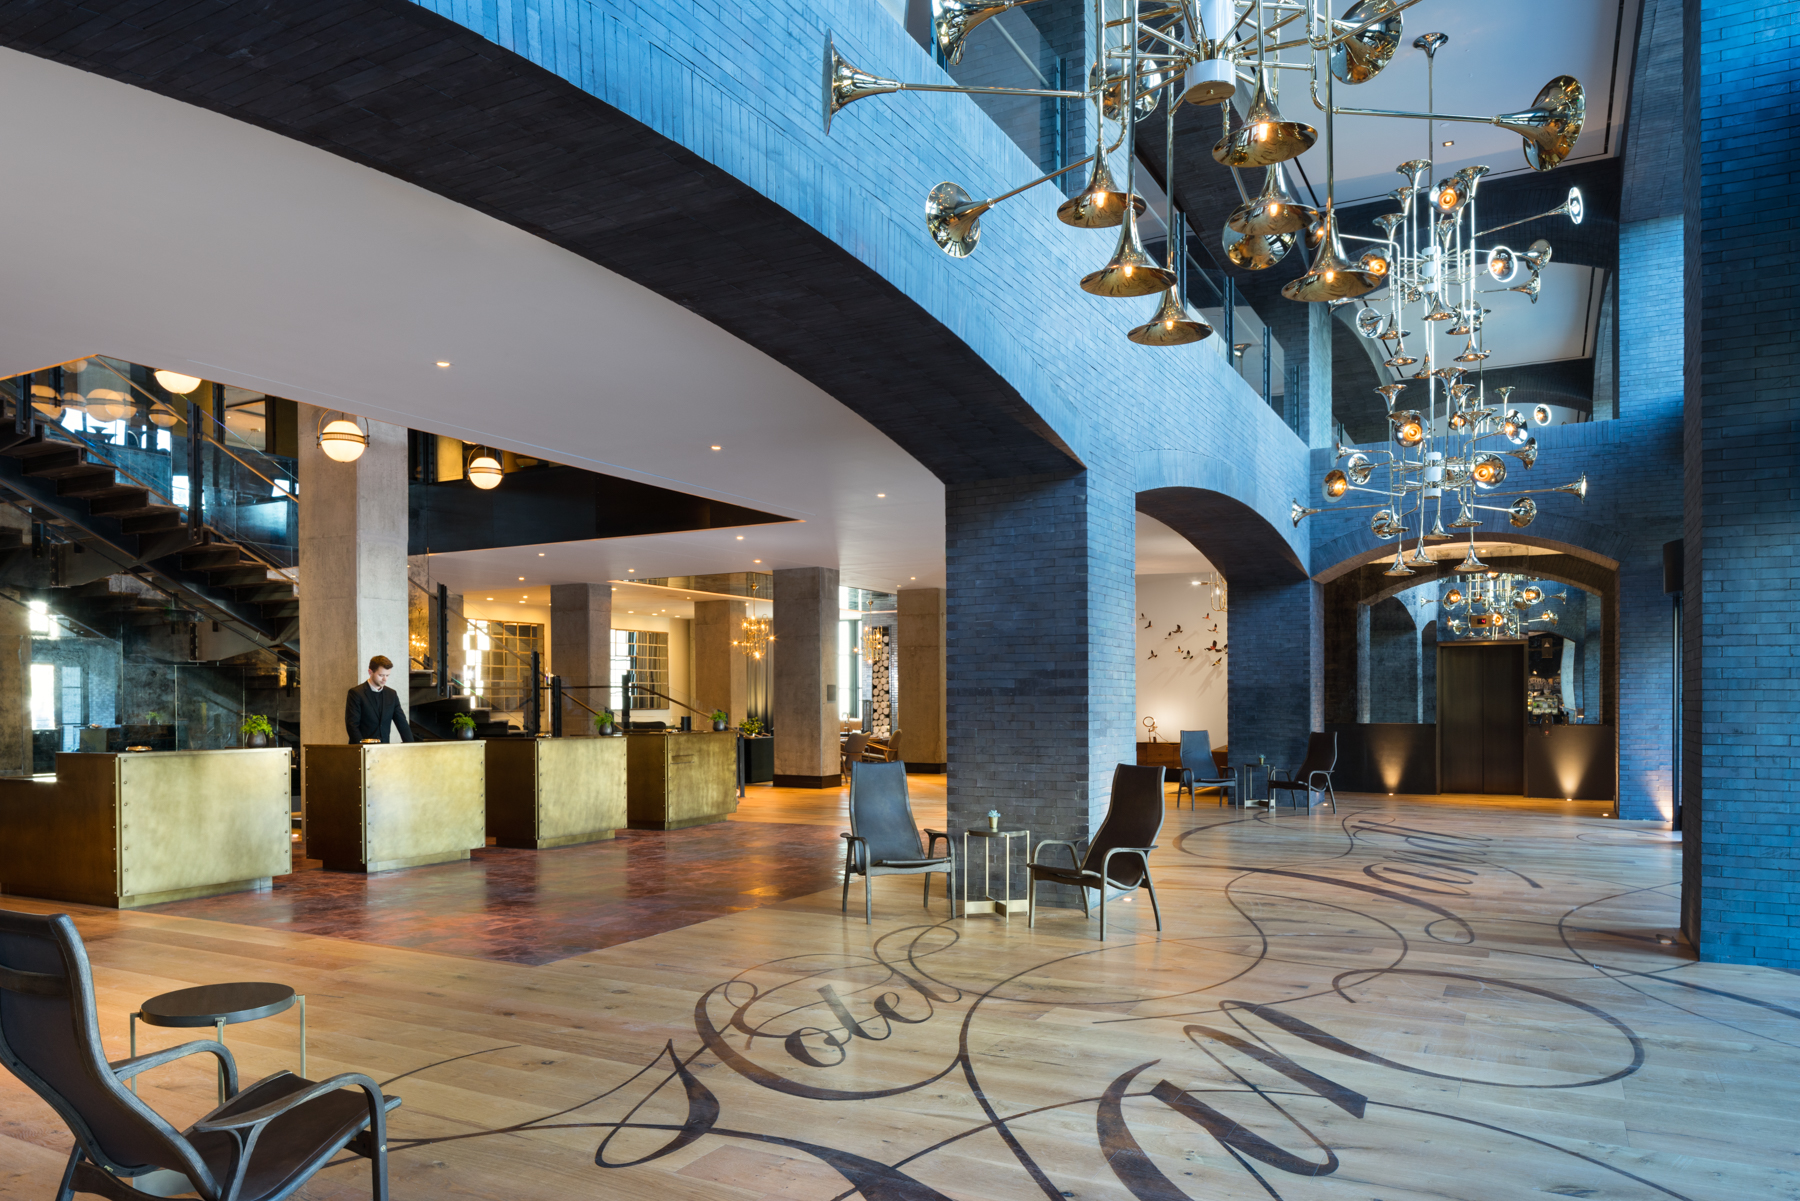 Hotels With Restaurant And Bar Near Austin Tx Airport